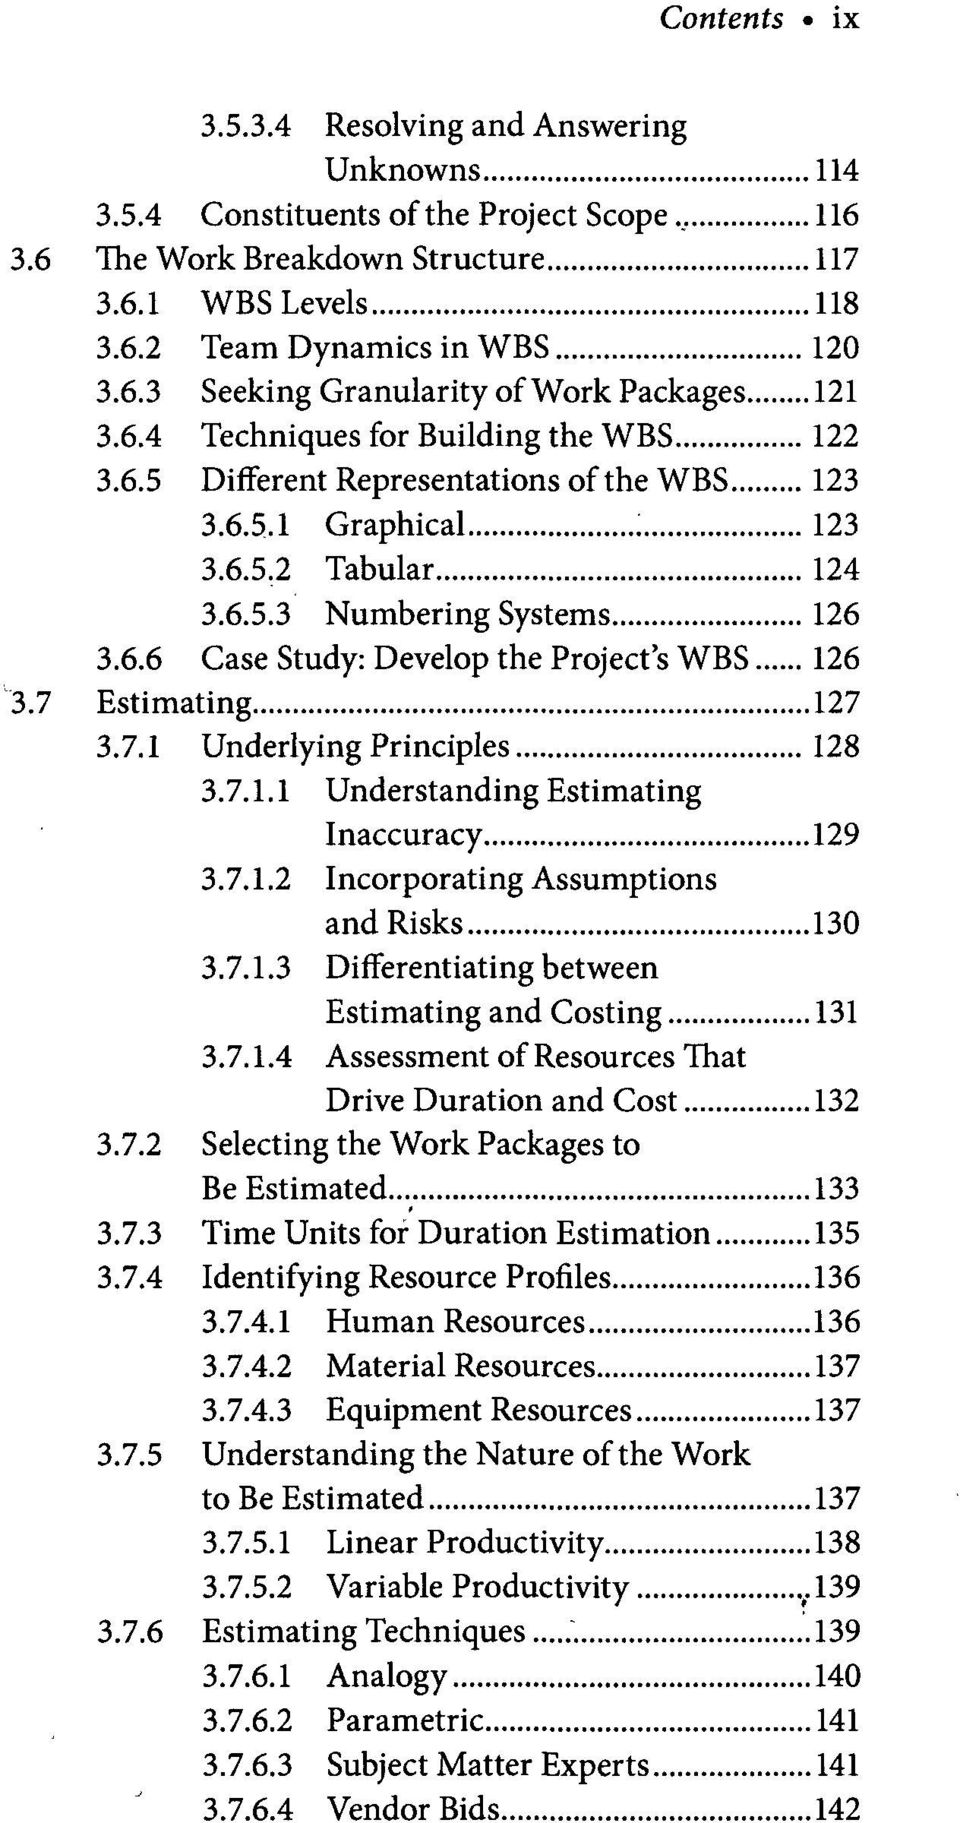 7 Estimating 127 3.7.1 Underlying Principles 128 3.7.1.1 Understanding Estimating Inaccuracy 129 3.7.1.2 Incorporating Assumptions and Risks 130 3.7.1.3 Differentiating between Estimating and Costing 131 3.